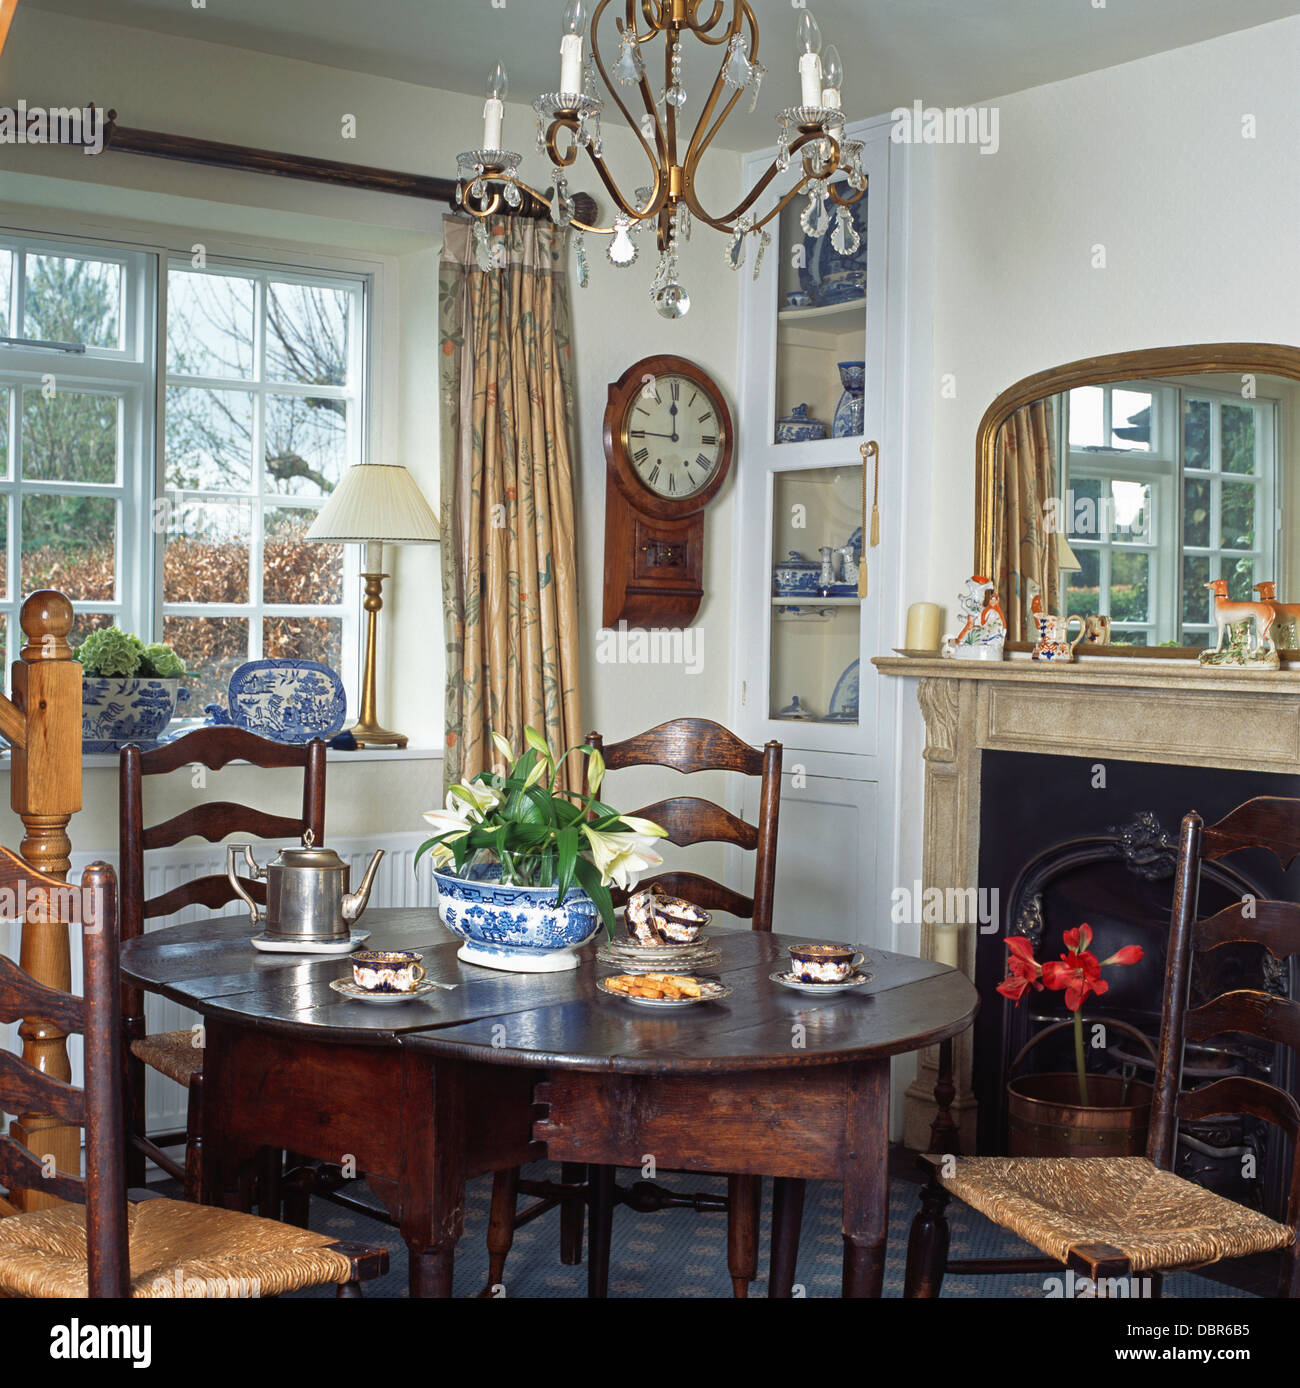 Rush-seated ladder back chairs and antique oak table in front of fireplace  in cottage dining room with wall clock beside window - Rush-seated Ladder Back Chairs And Antique Oak Table In Front Of